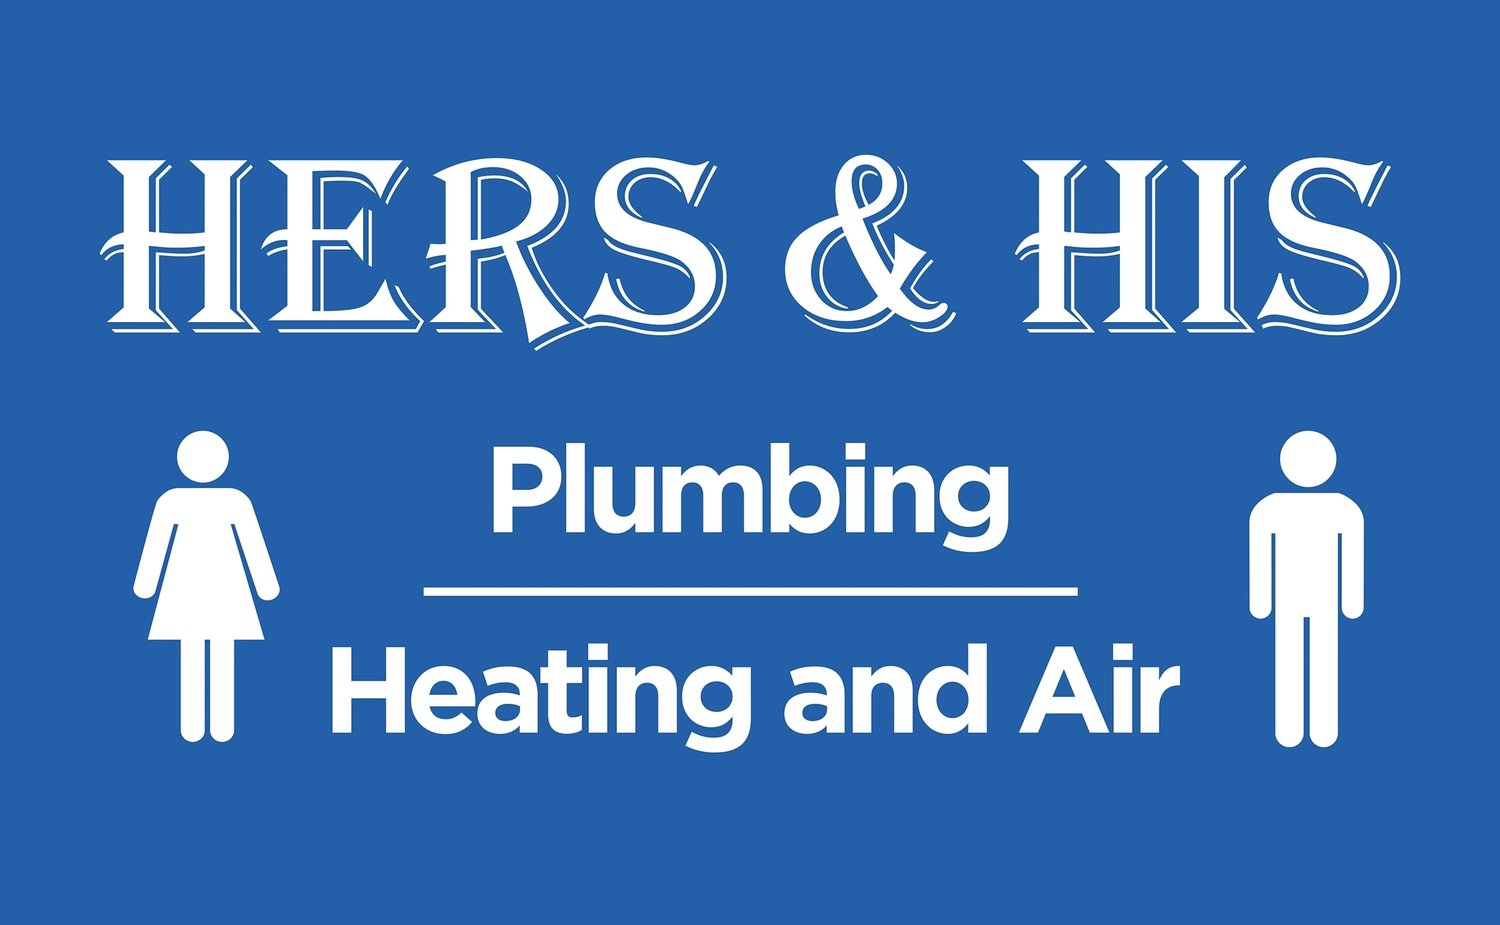 Hers & His Plumbing Heating and Air